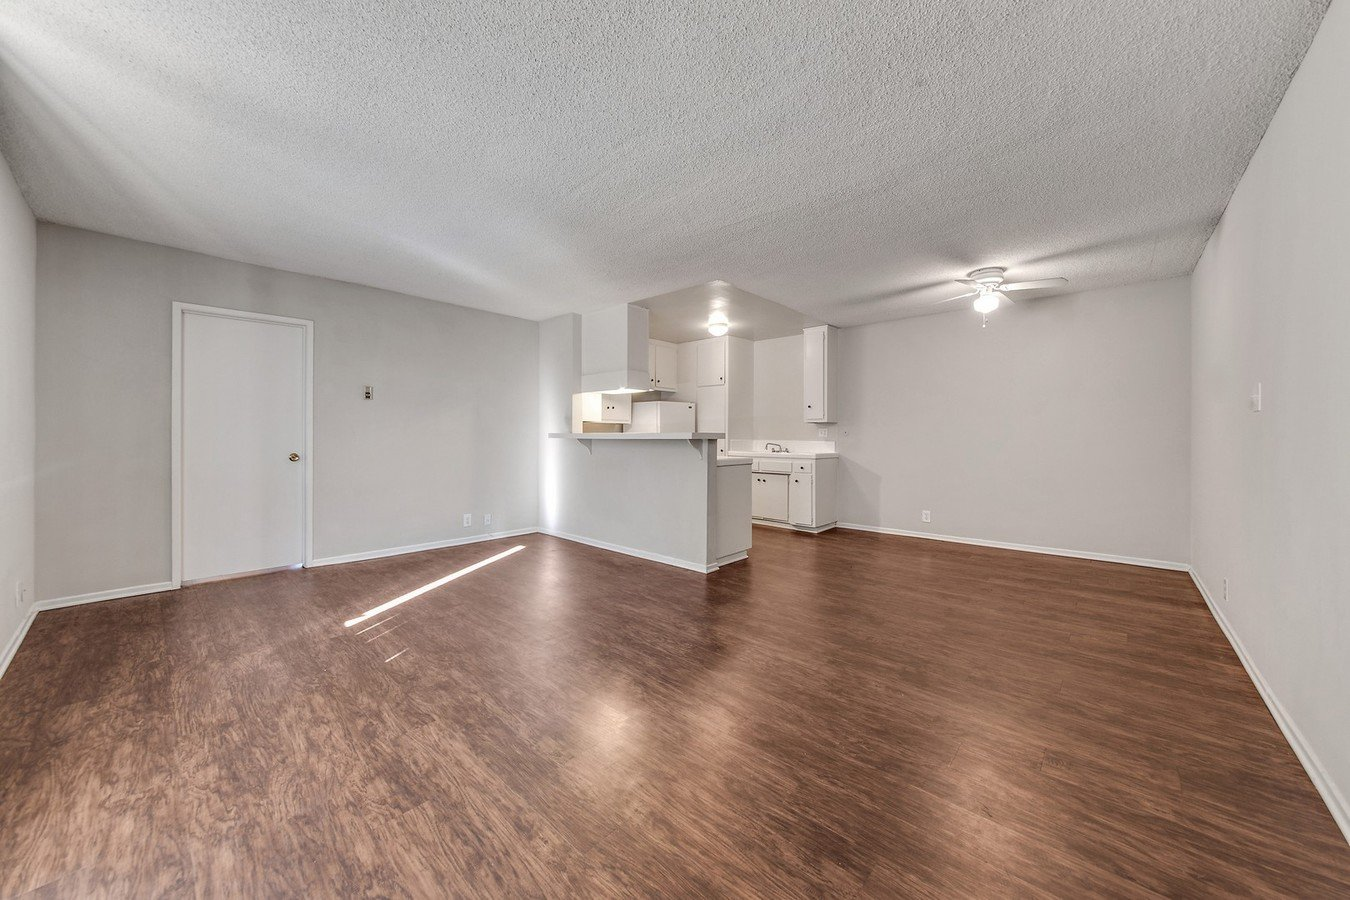 1 Bedroom 1 Bathroom Apartment for rent at Country Club Apartments in Van Nuys, CA